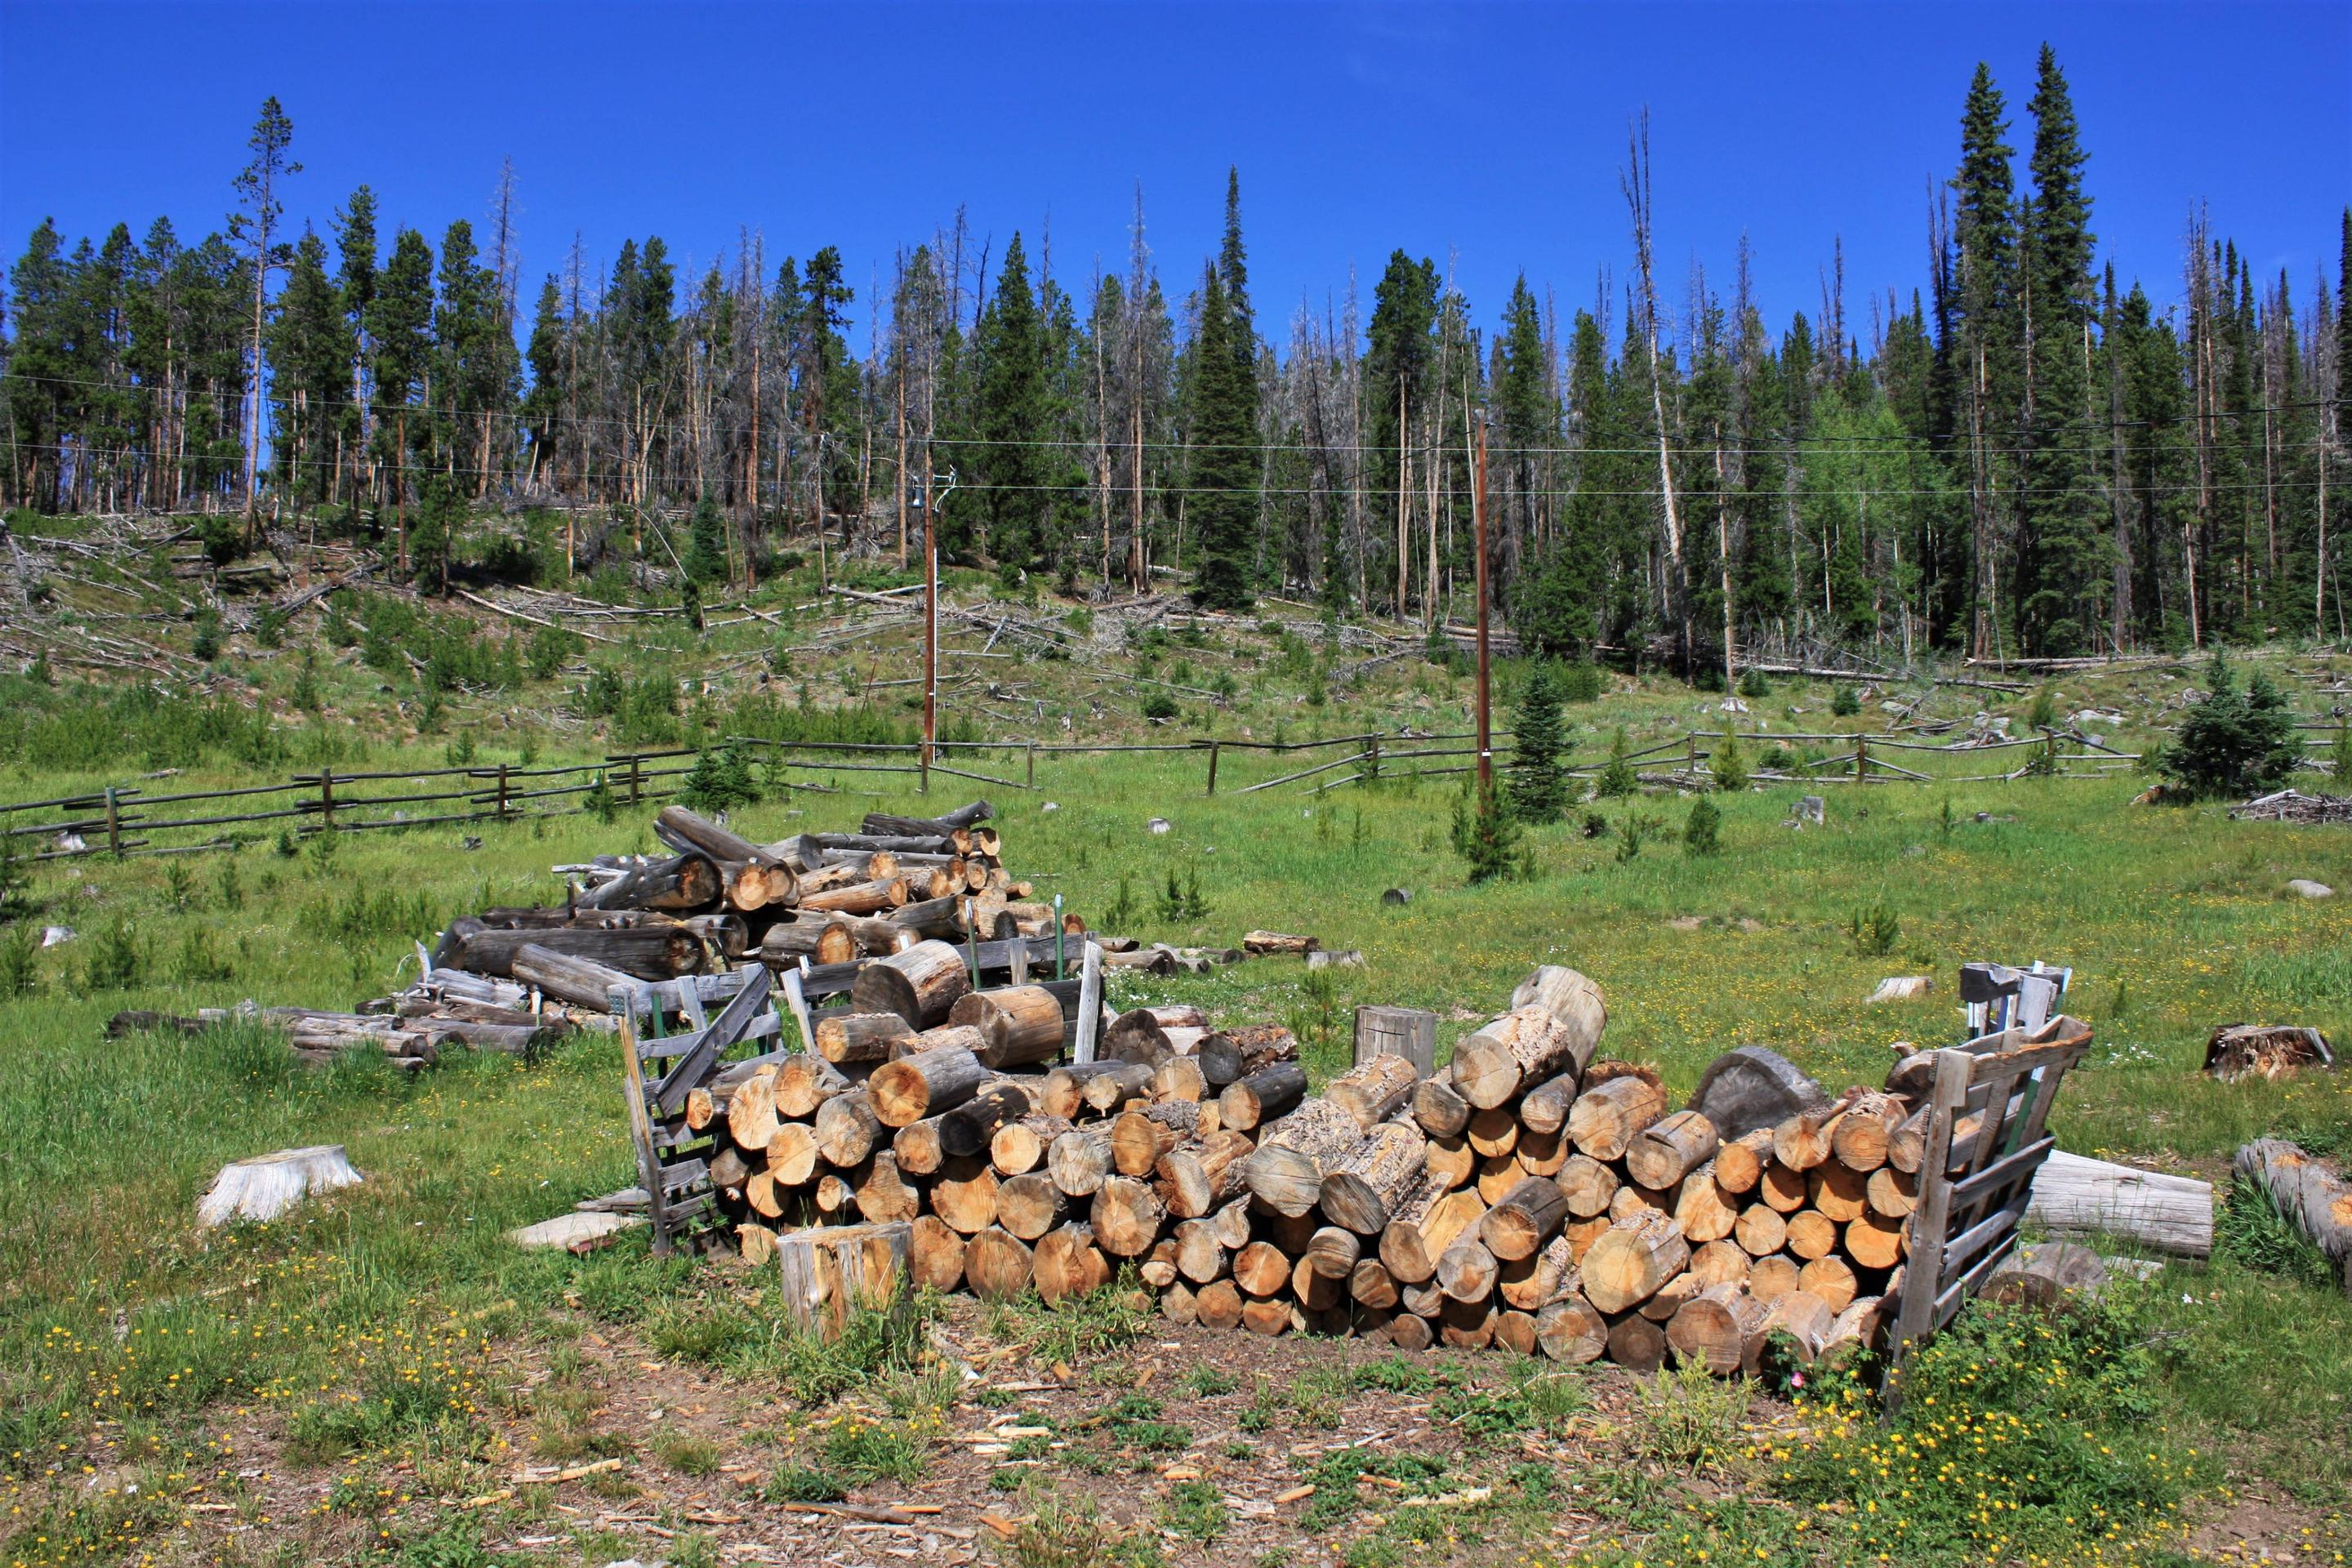 Keystone Ranger Station woodpile